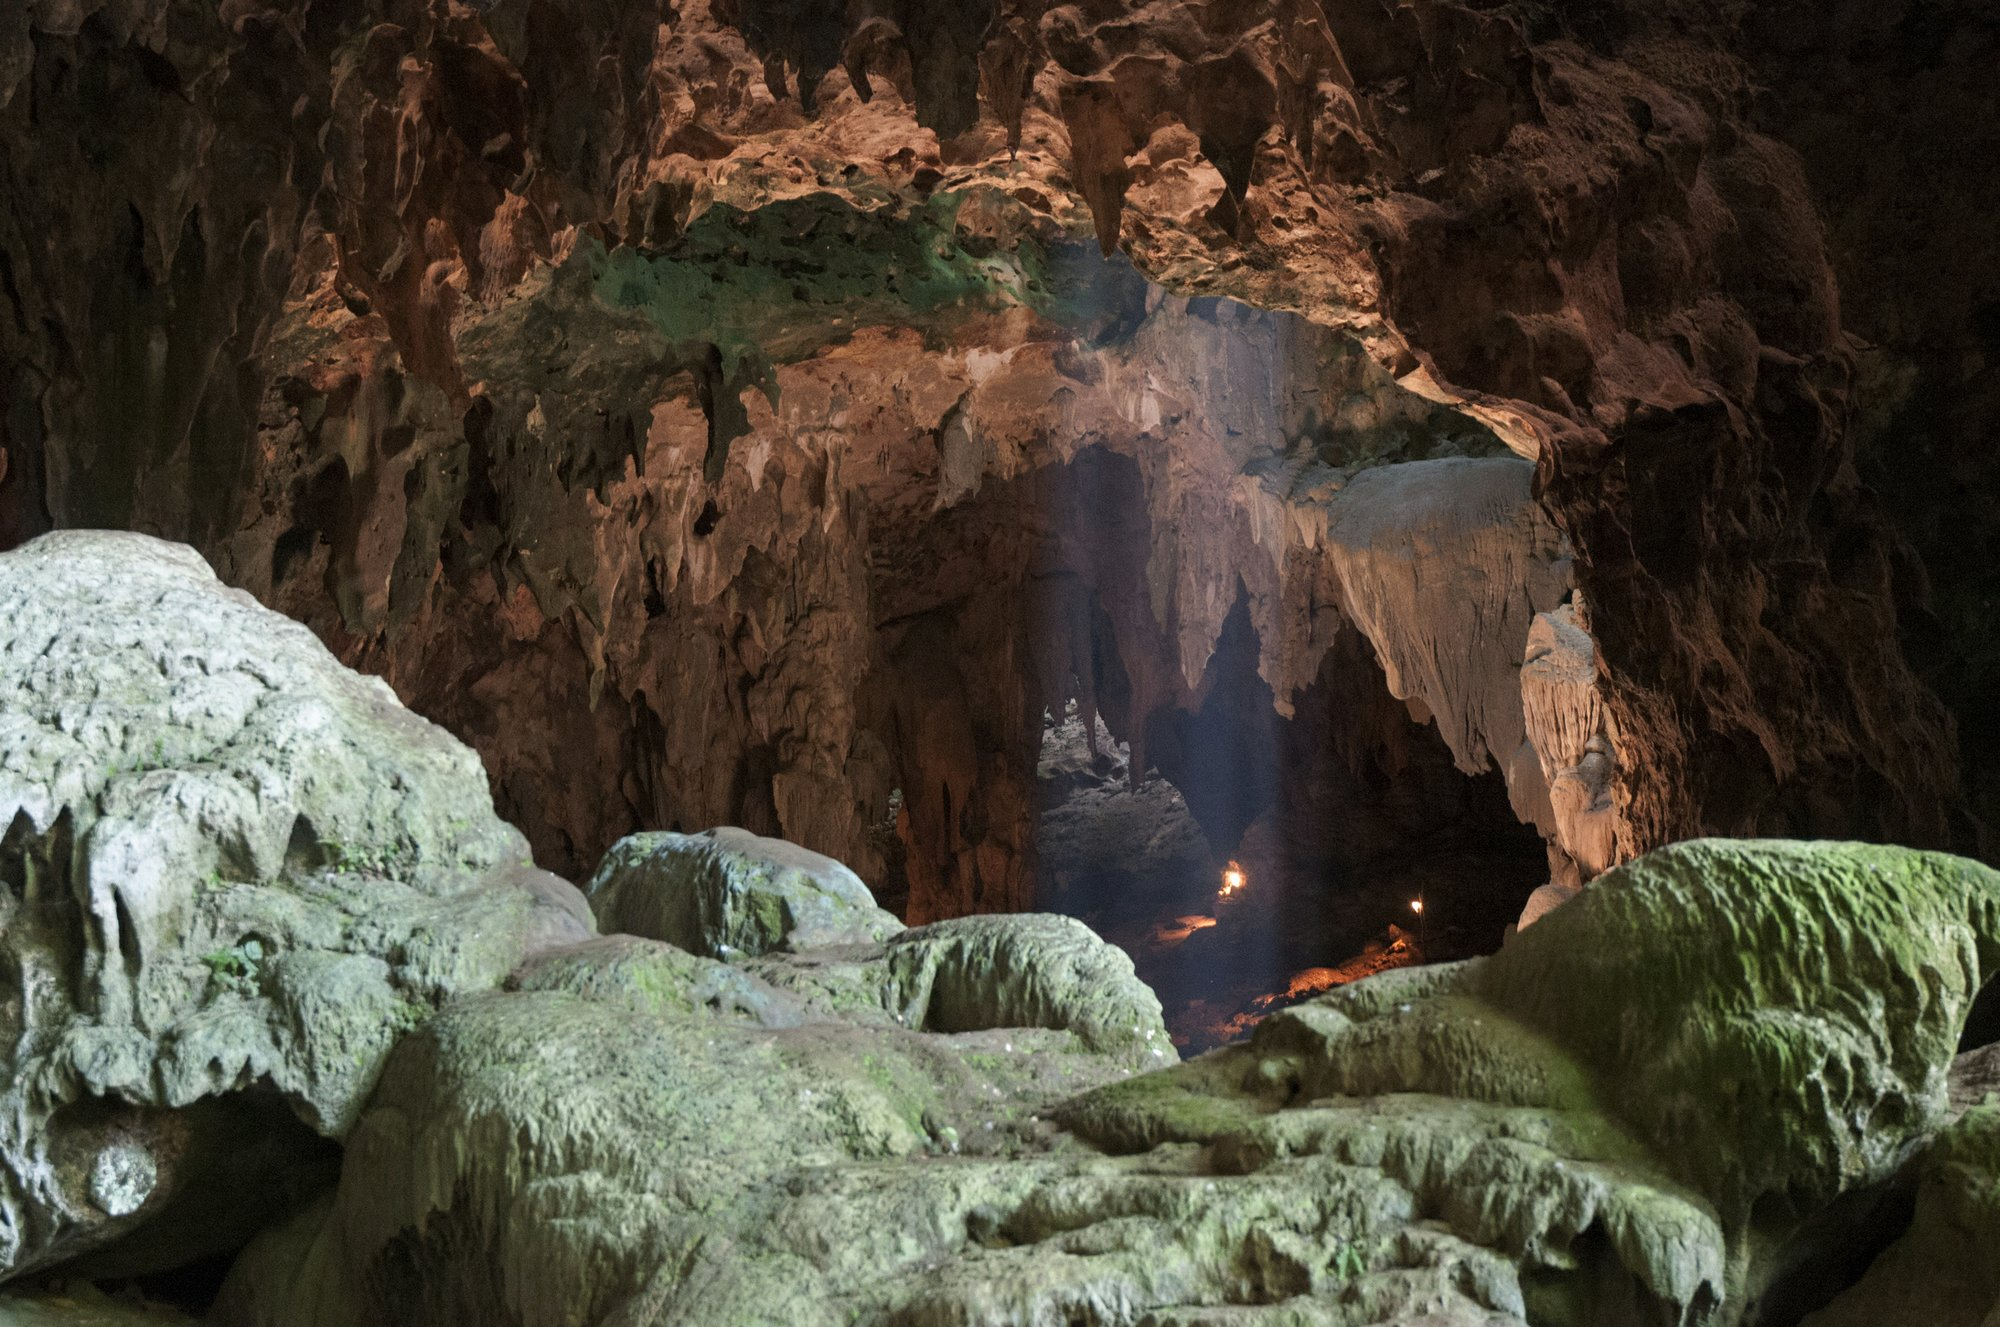 Bones from Philippine cave reveal a new human cousin